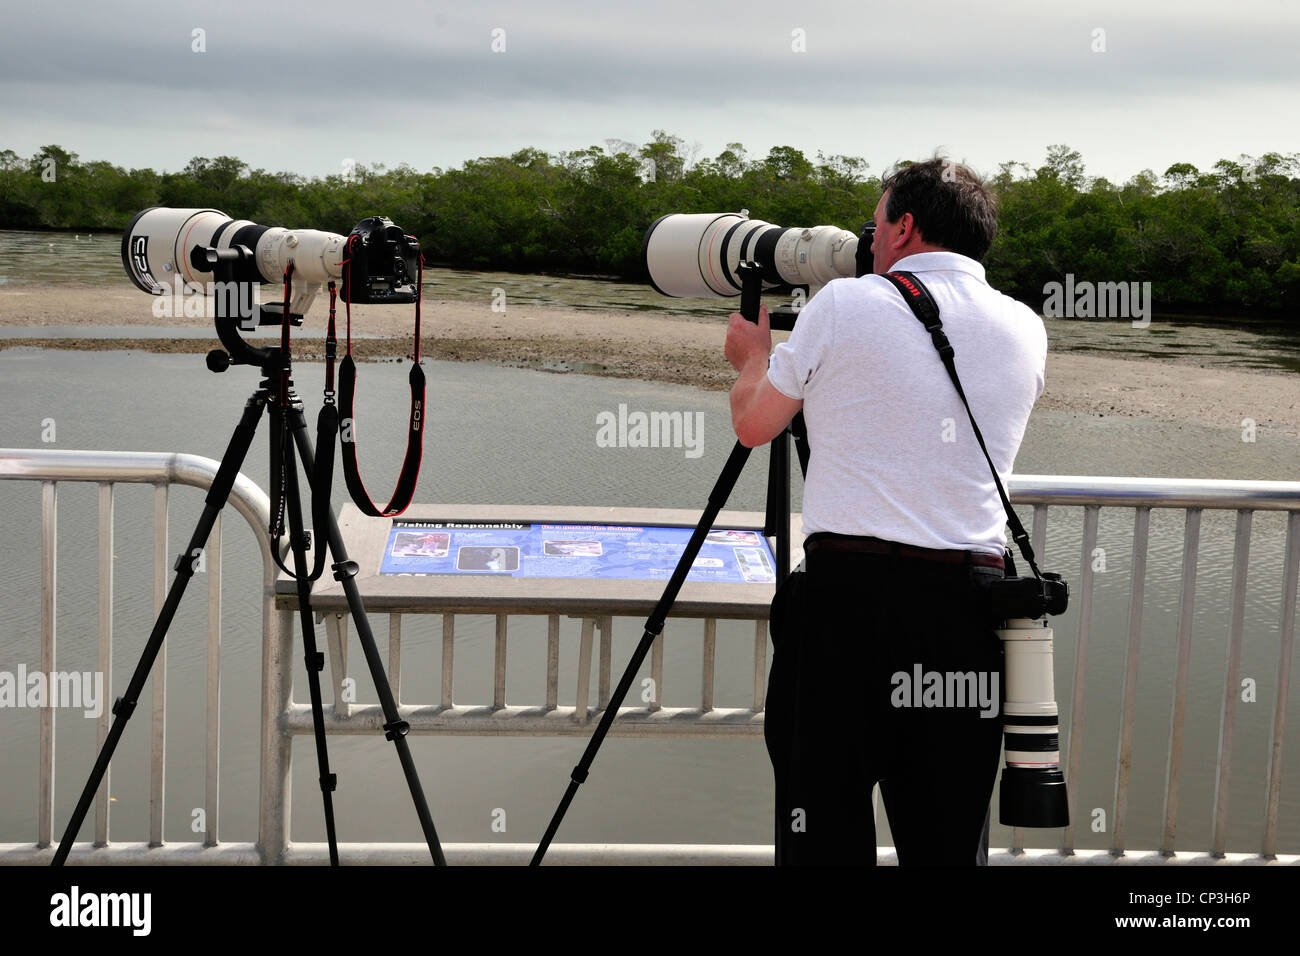 A photographer with three Canon cameras sights a bird at Ding Darling National Wildlife Refuge, Sanibel, Florida - Stock Image